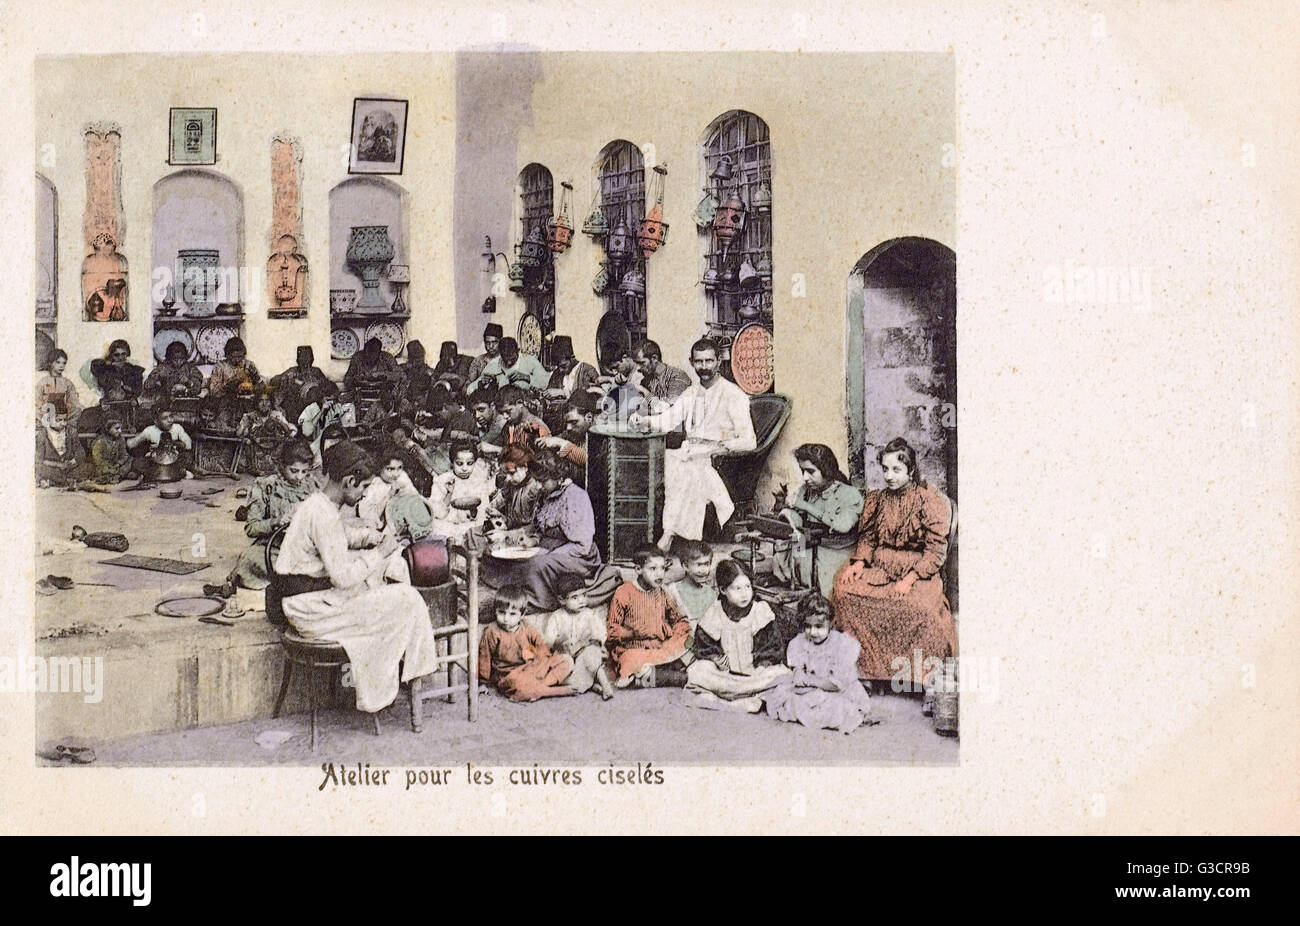 Syria - Jewish Workers producing Engraved Brasswork     Date: circa 1905 - Stock Image